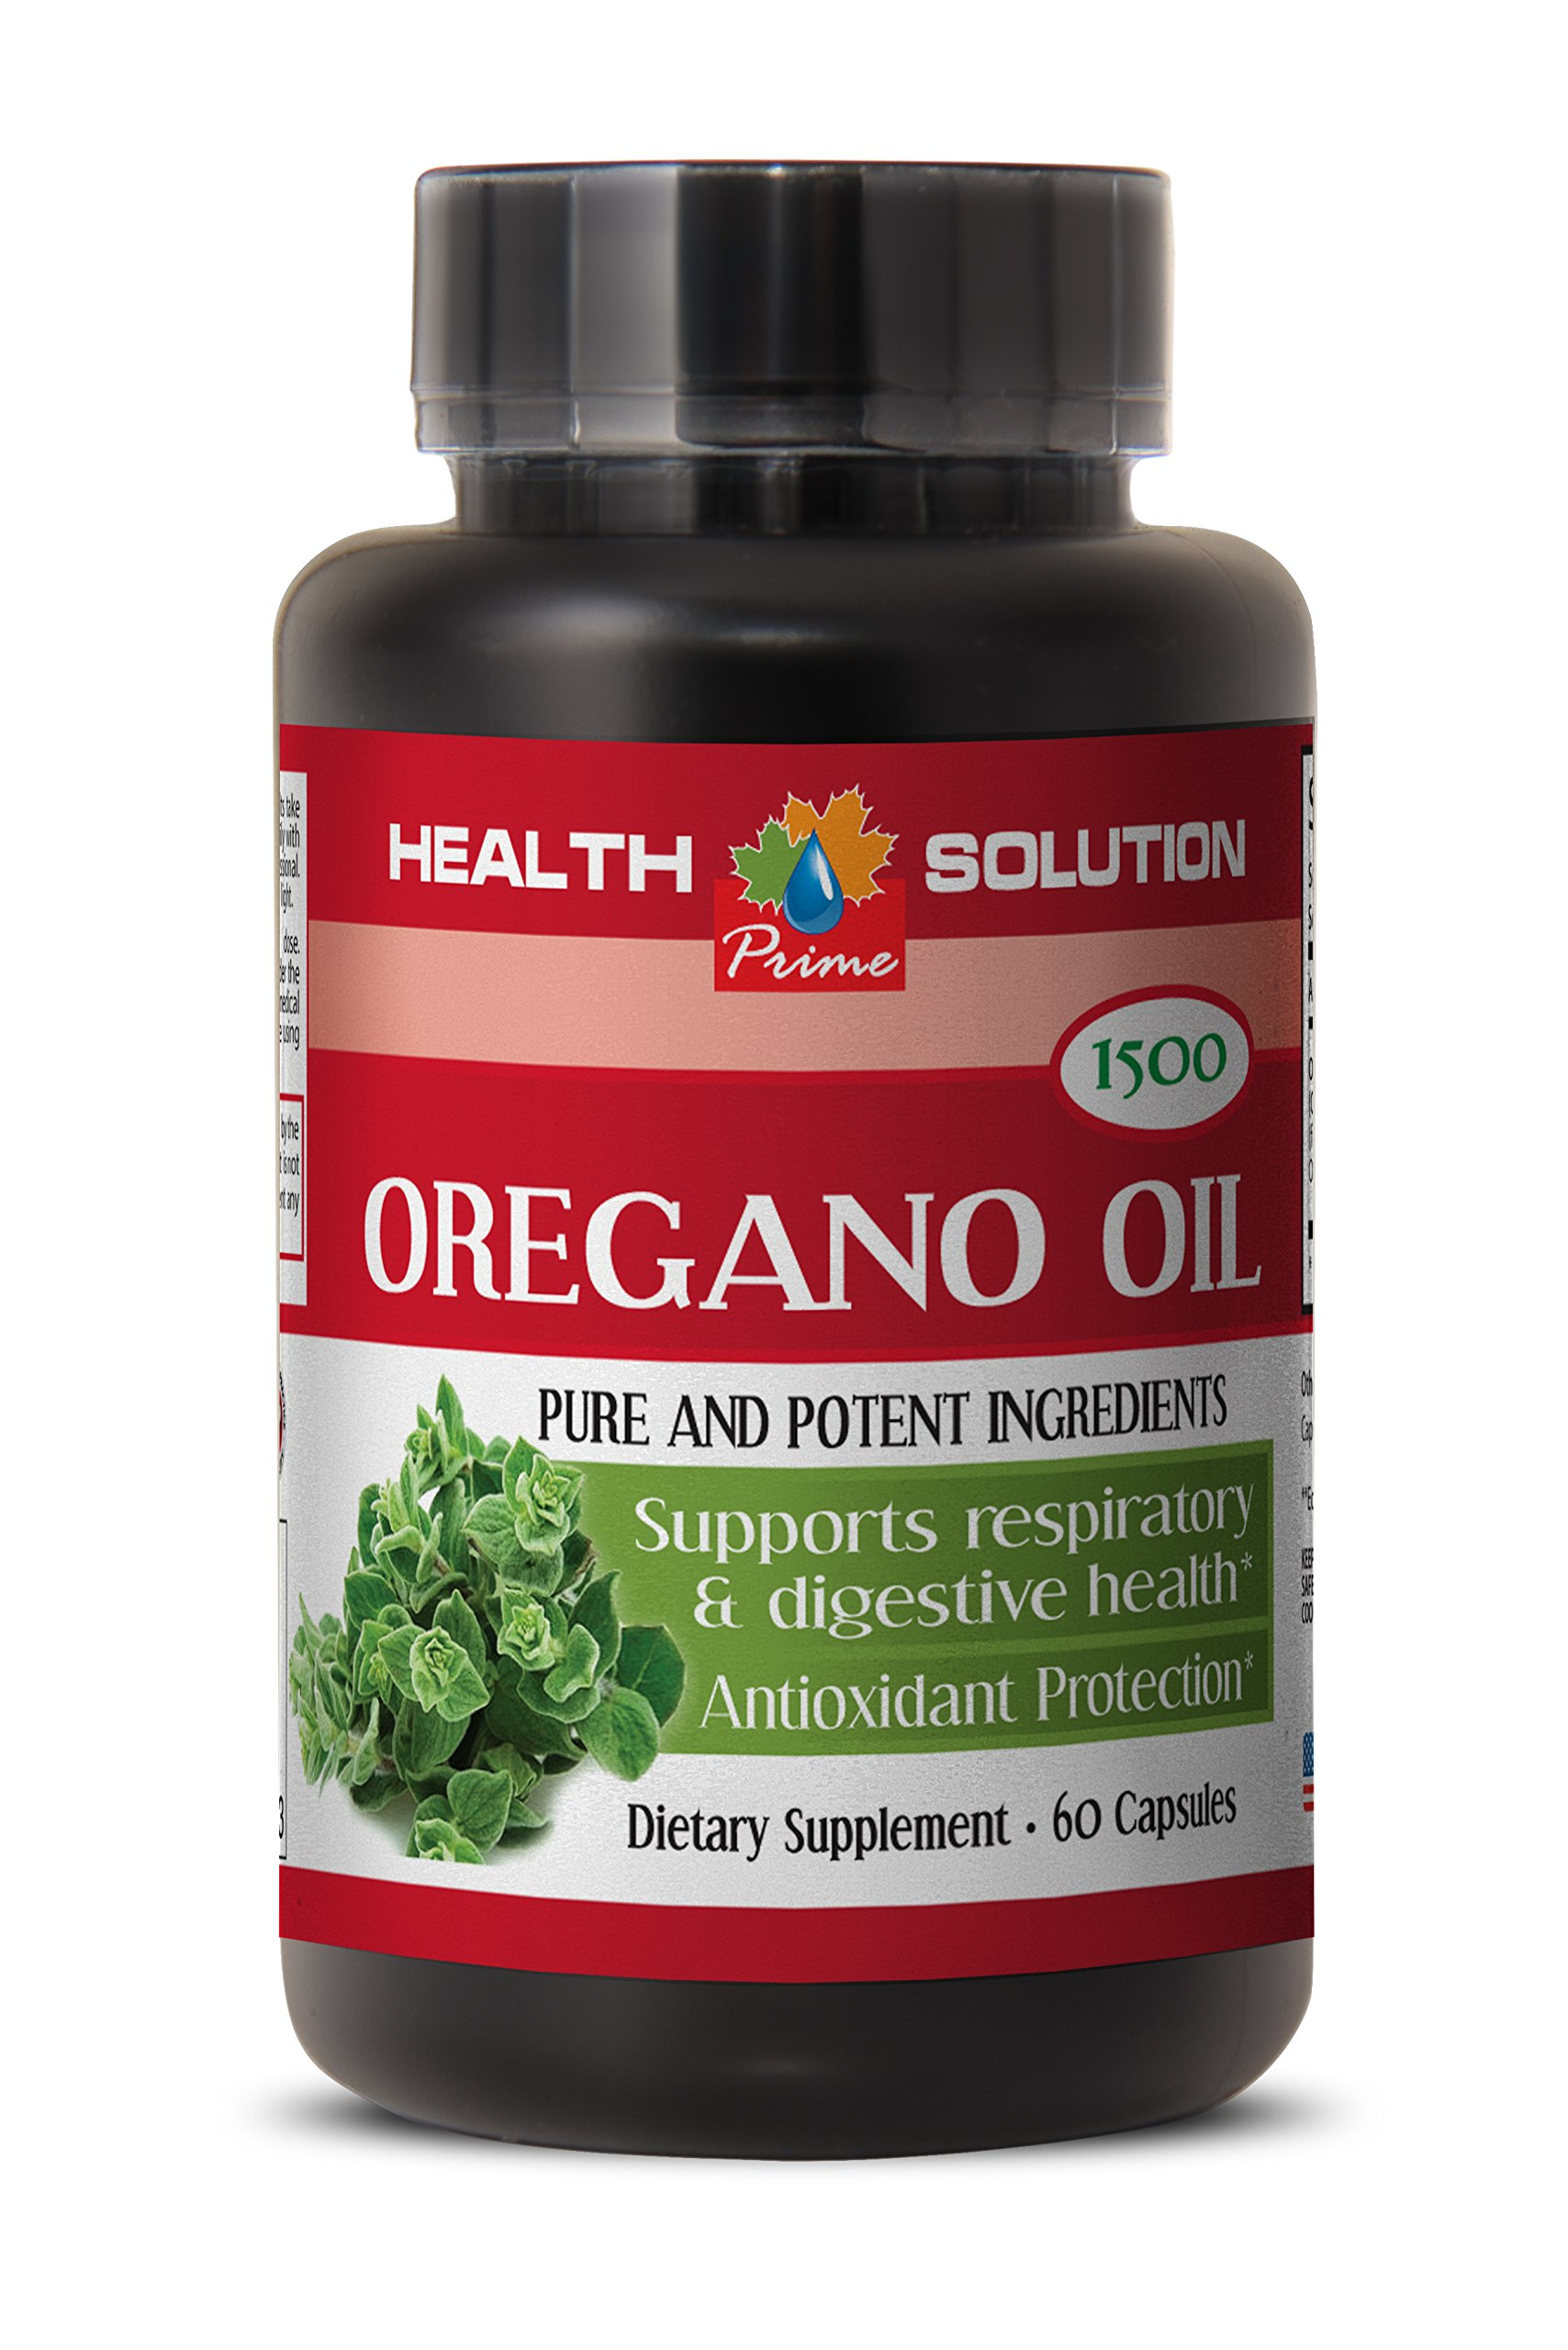 Immune system booster for men - OREGANO OIL EXTRACT (PURE AND POTENT INGREDIENTS) - Wild mediterranean oregano oil - 1 Bottle 60 Capsules by Health Solution Prime